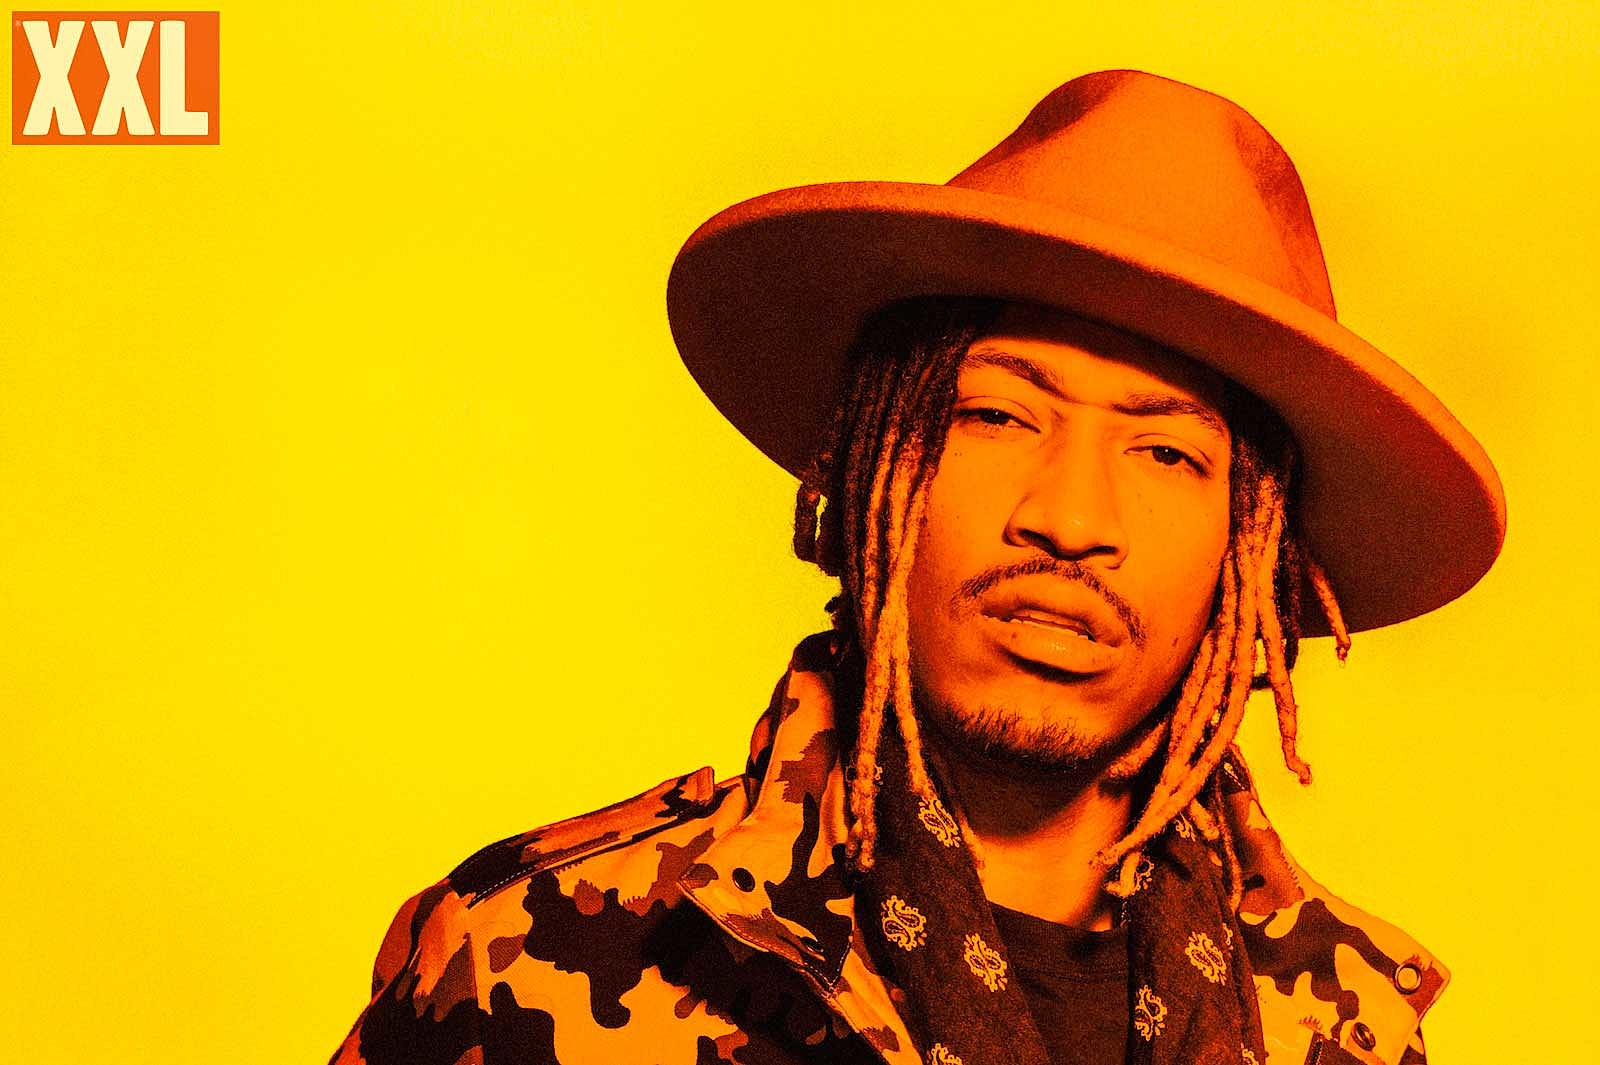 future behind the scenes xxl cover shoot yellow